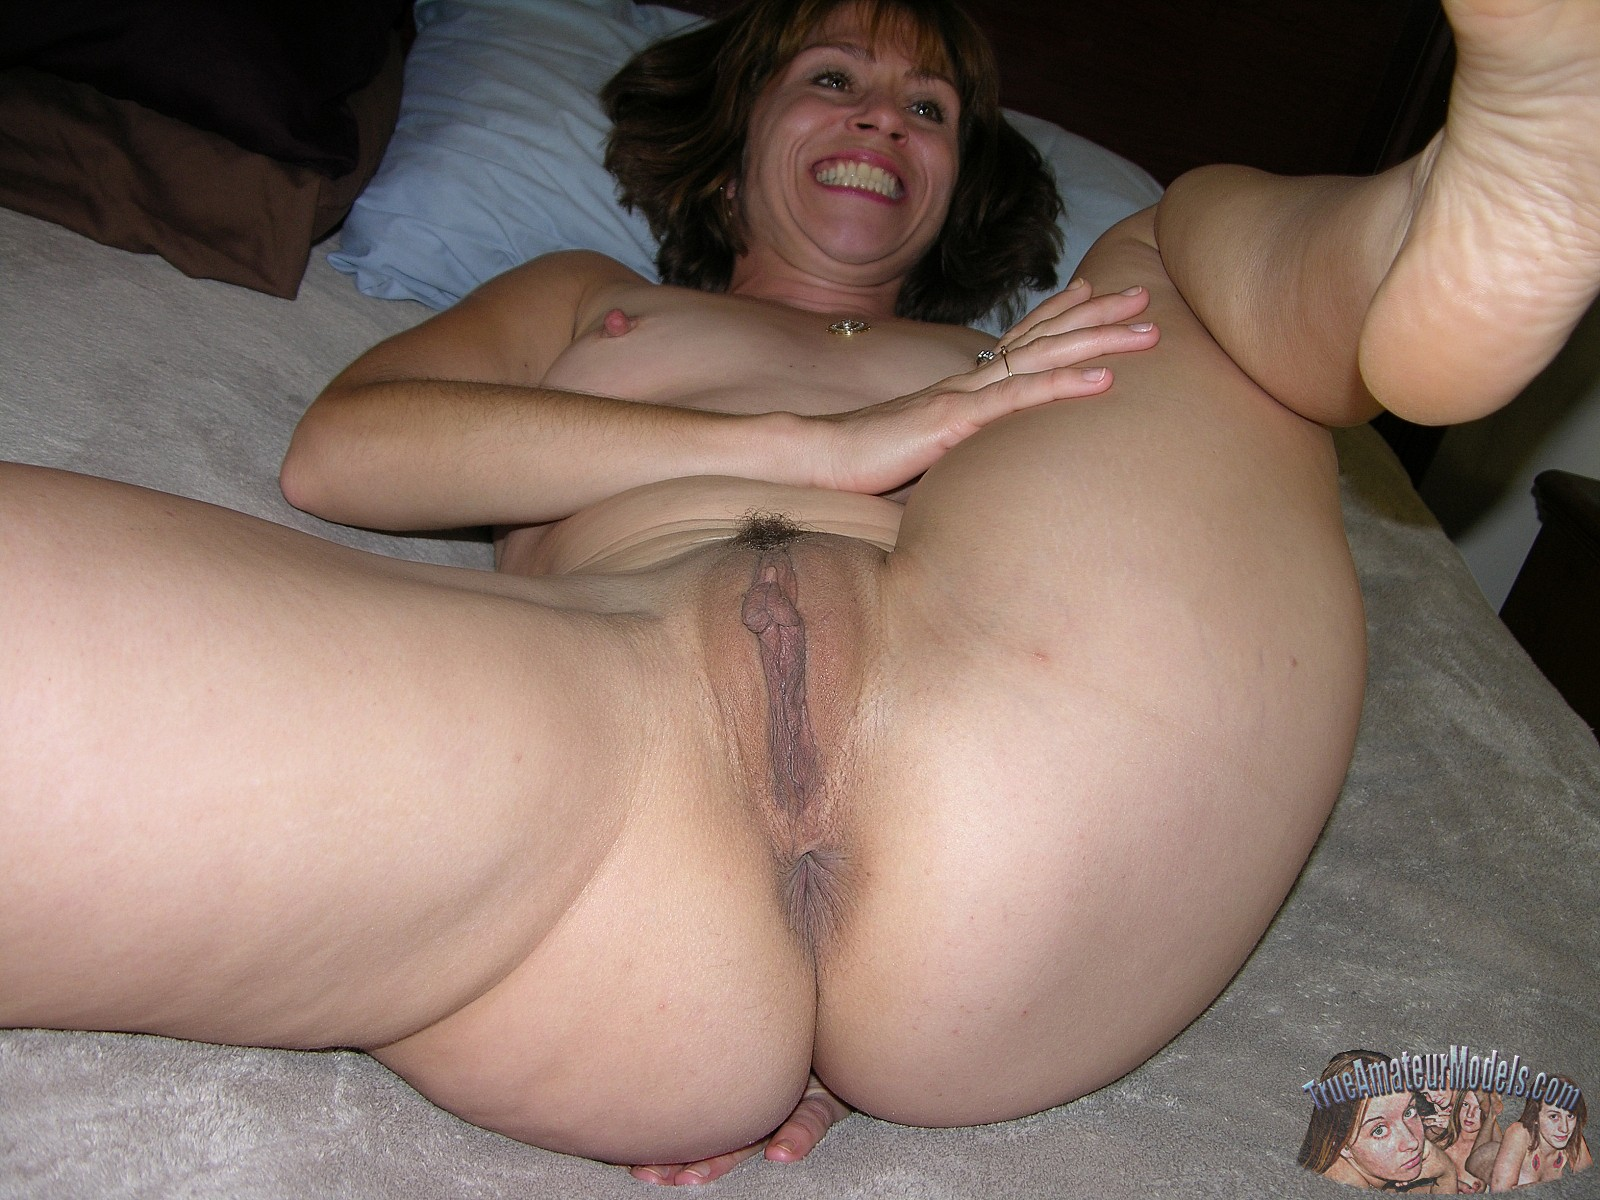 Duly answer mature milf wife fuck nude good question